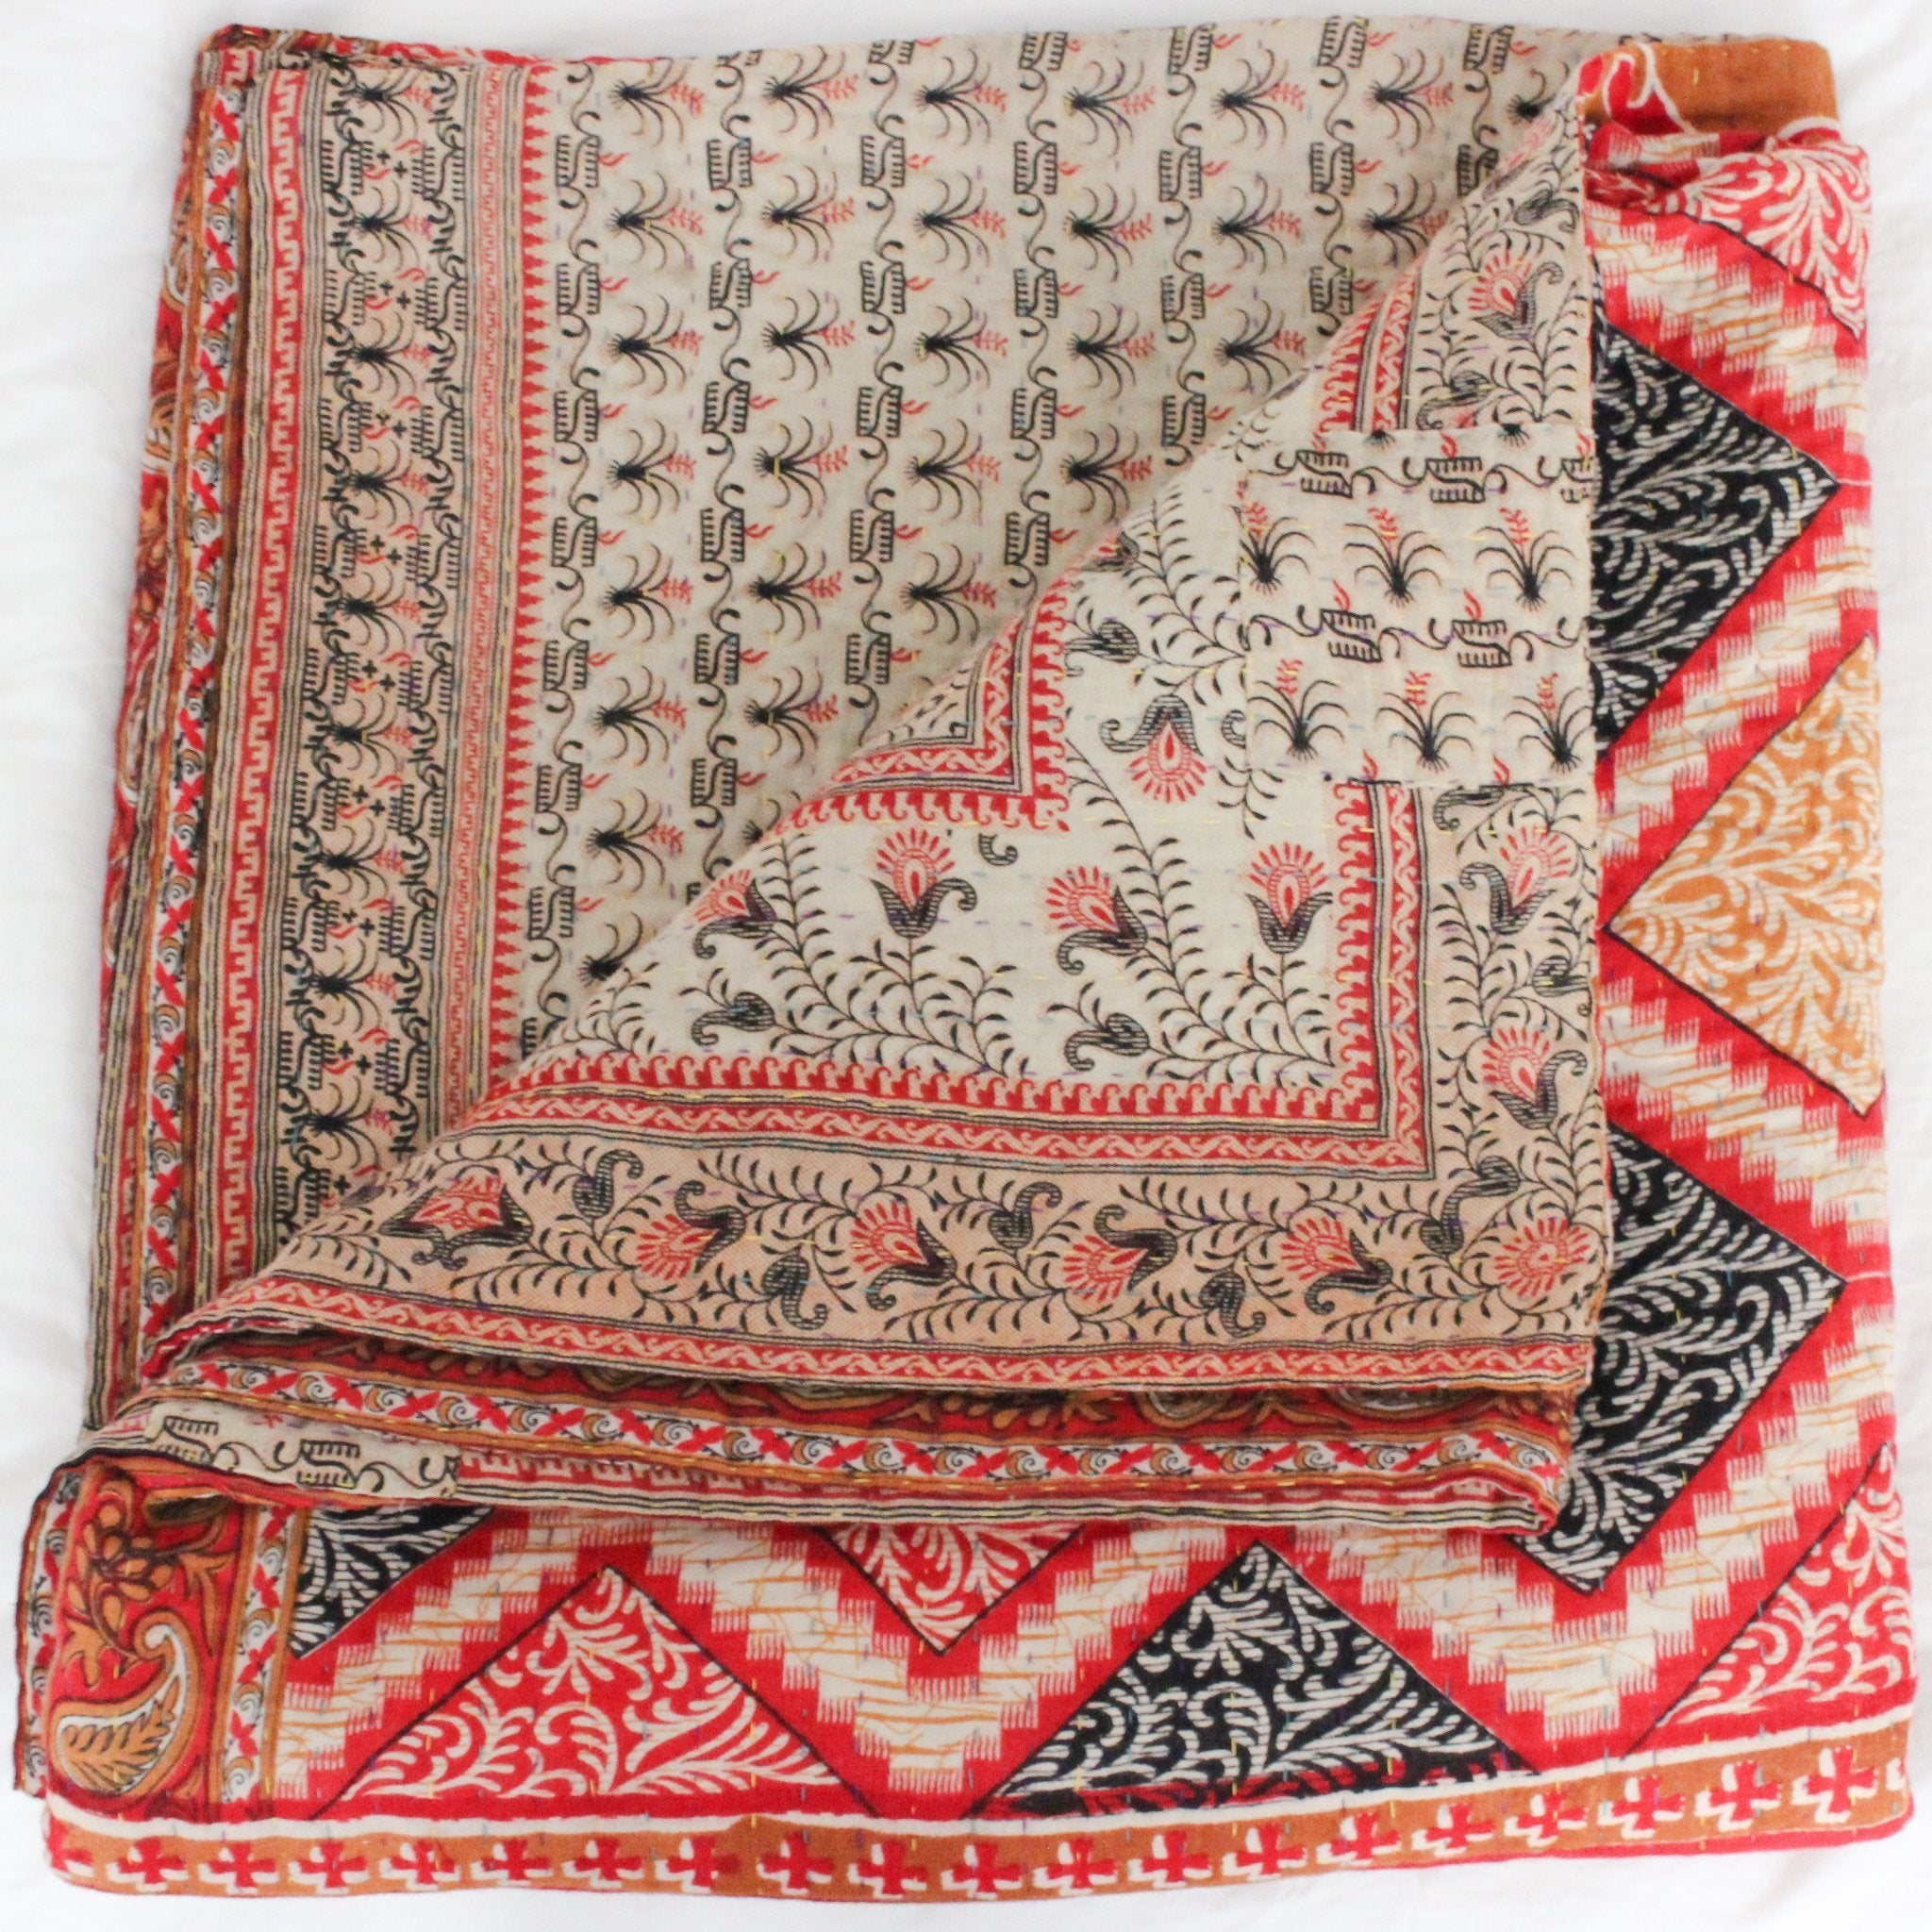 Vintage Kantha Quilt in pink and red- Anokha Collection